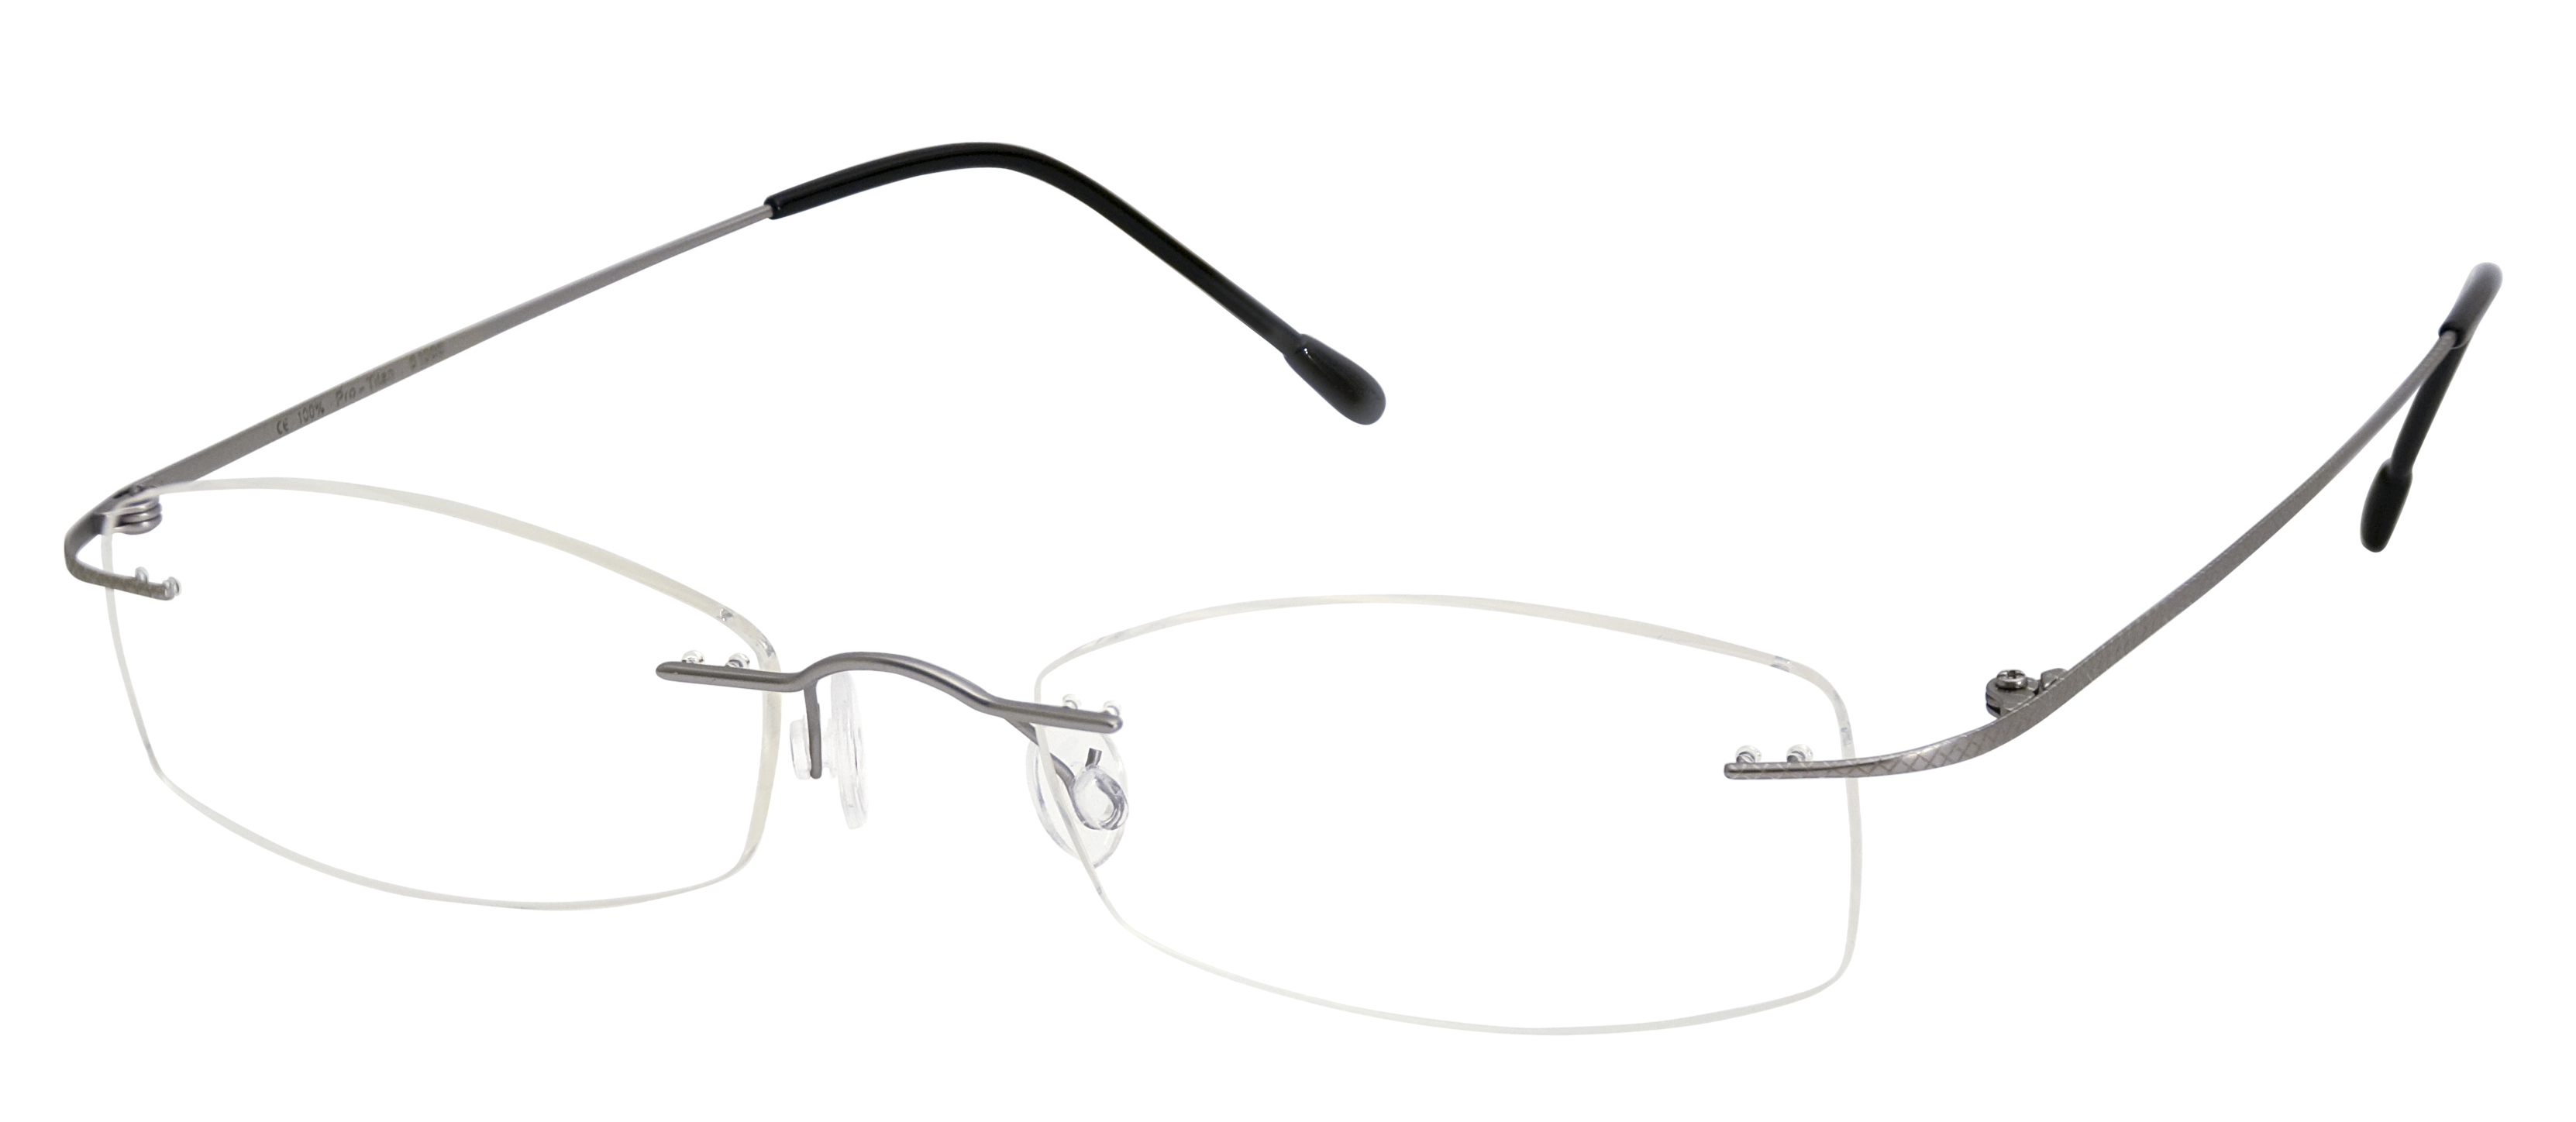 0278552b687 Rimless eyeglasses - Wikipedia